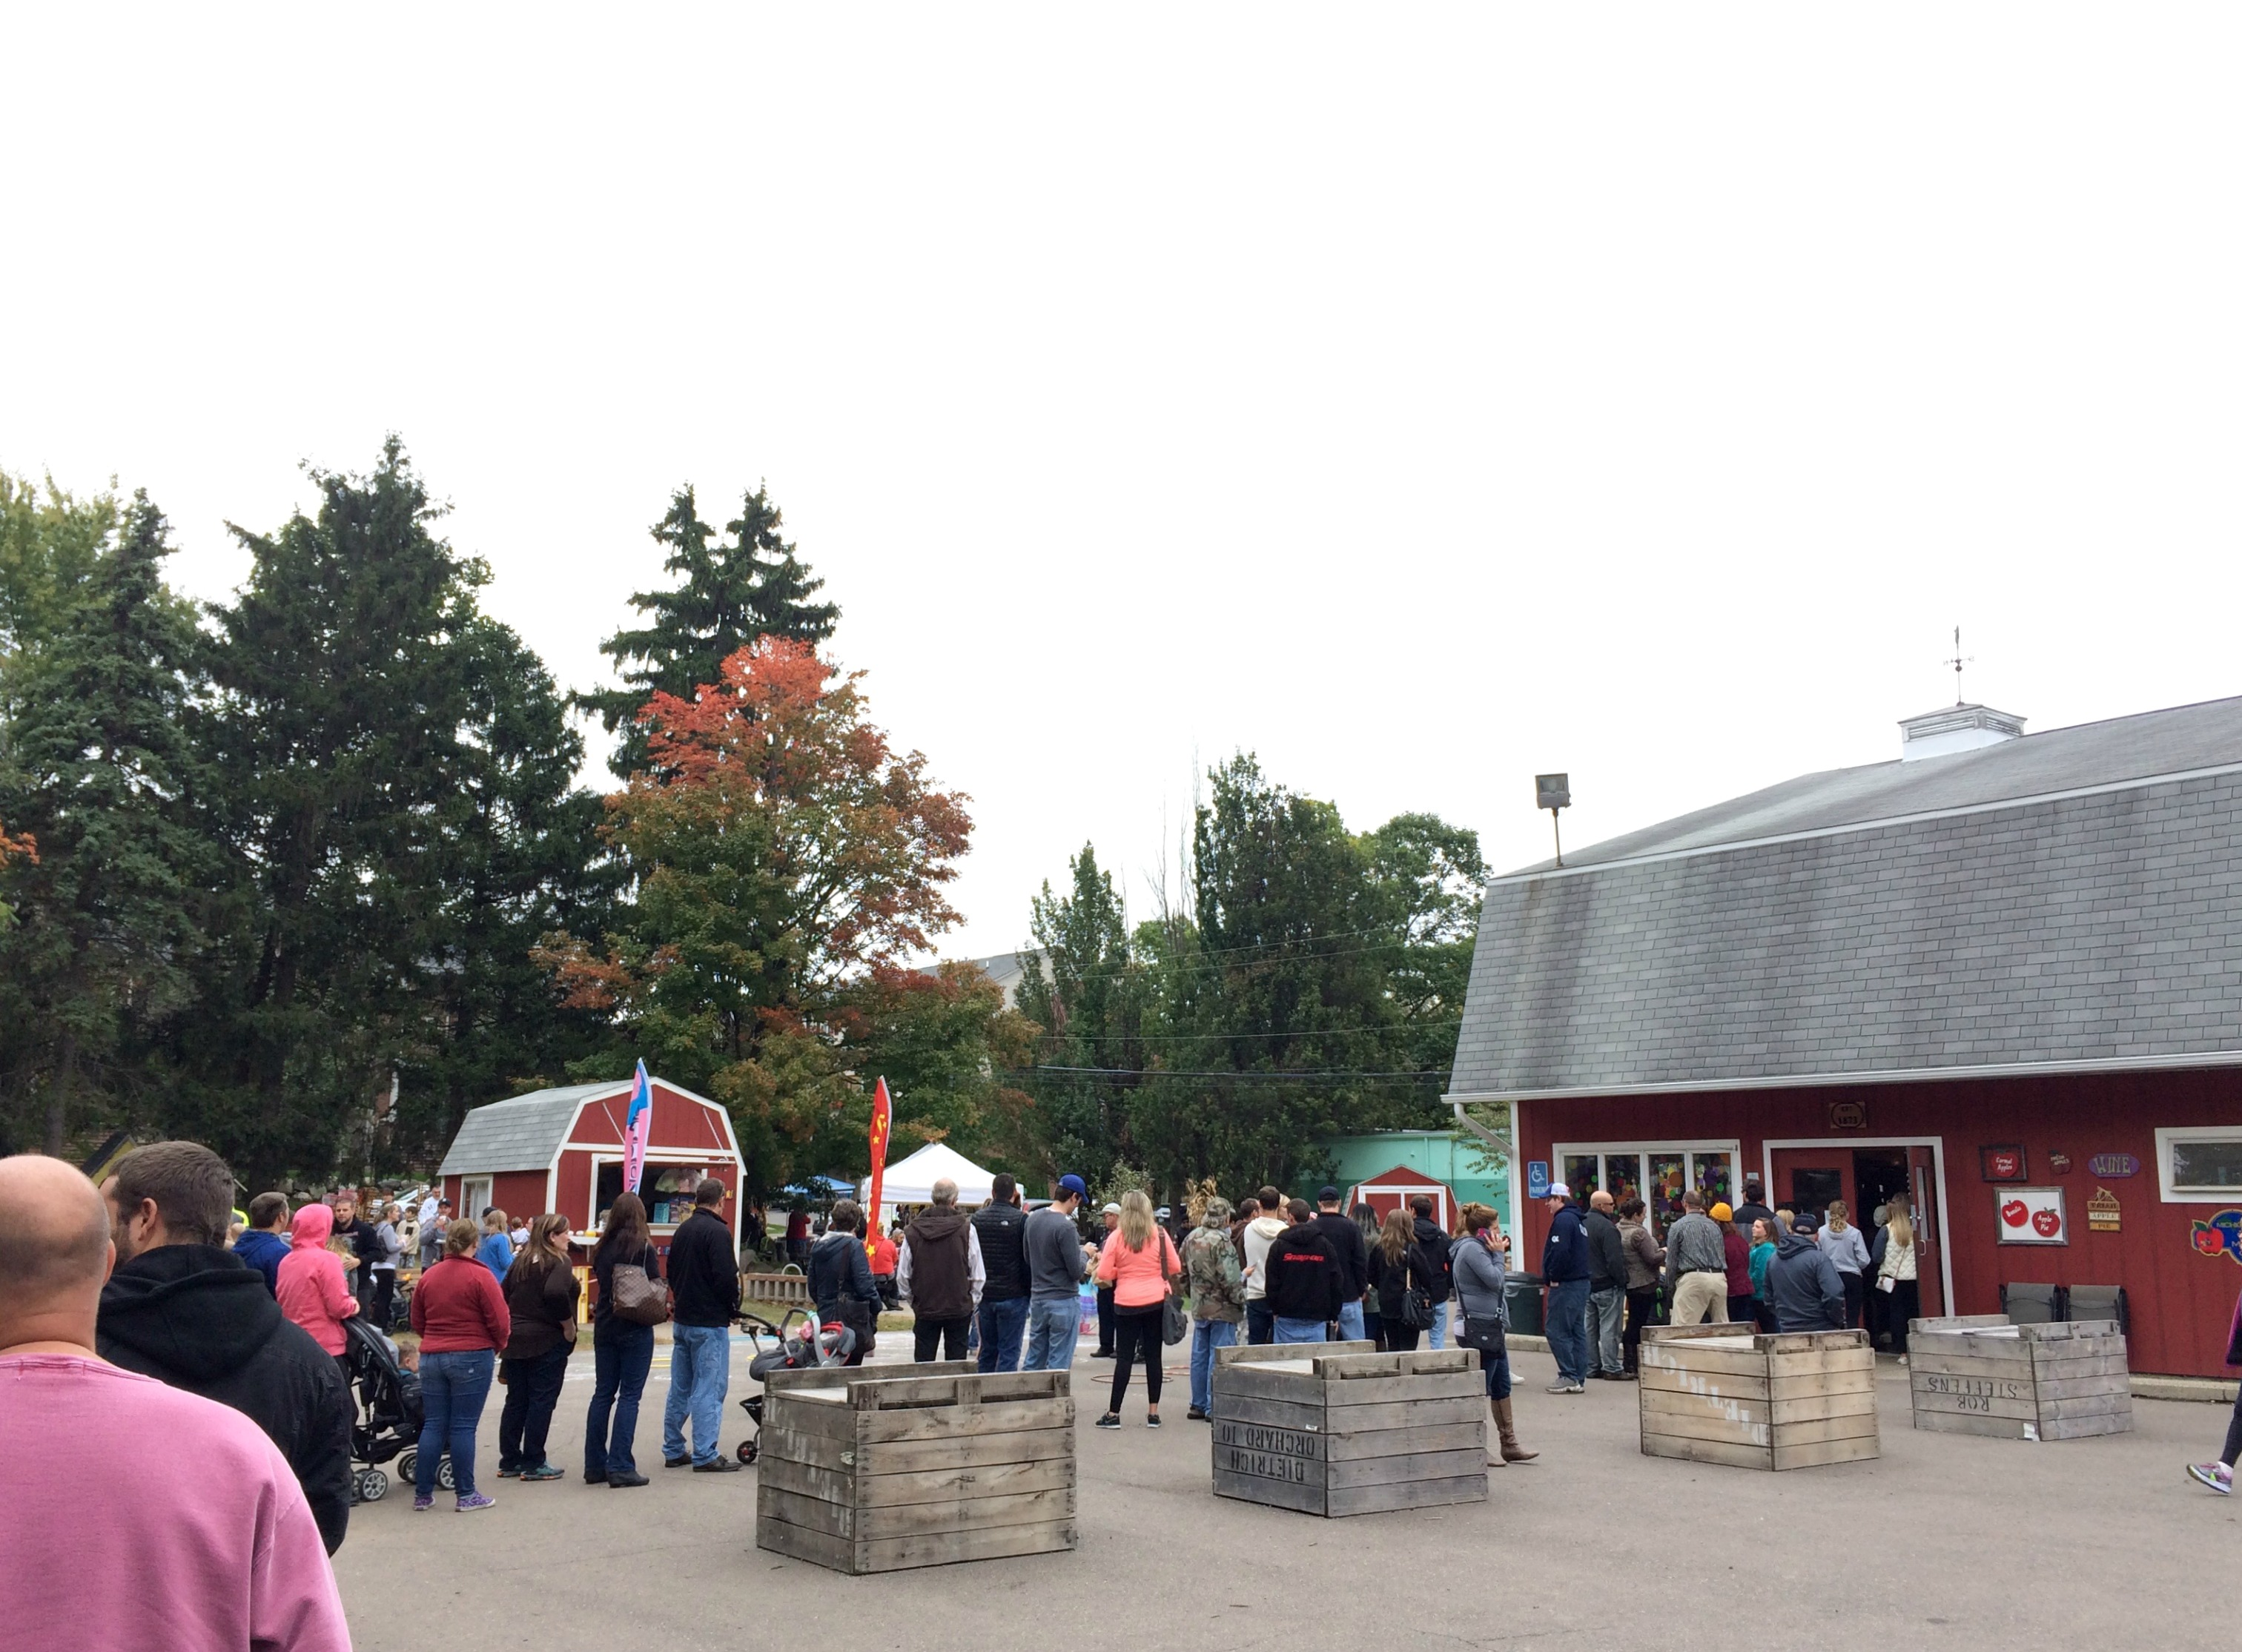 cider mill line out the door